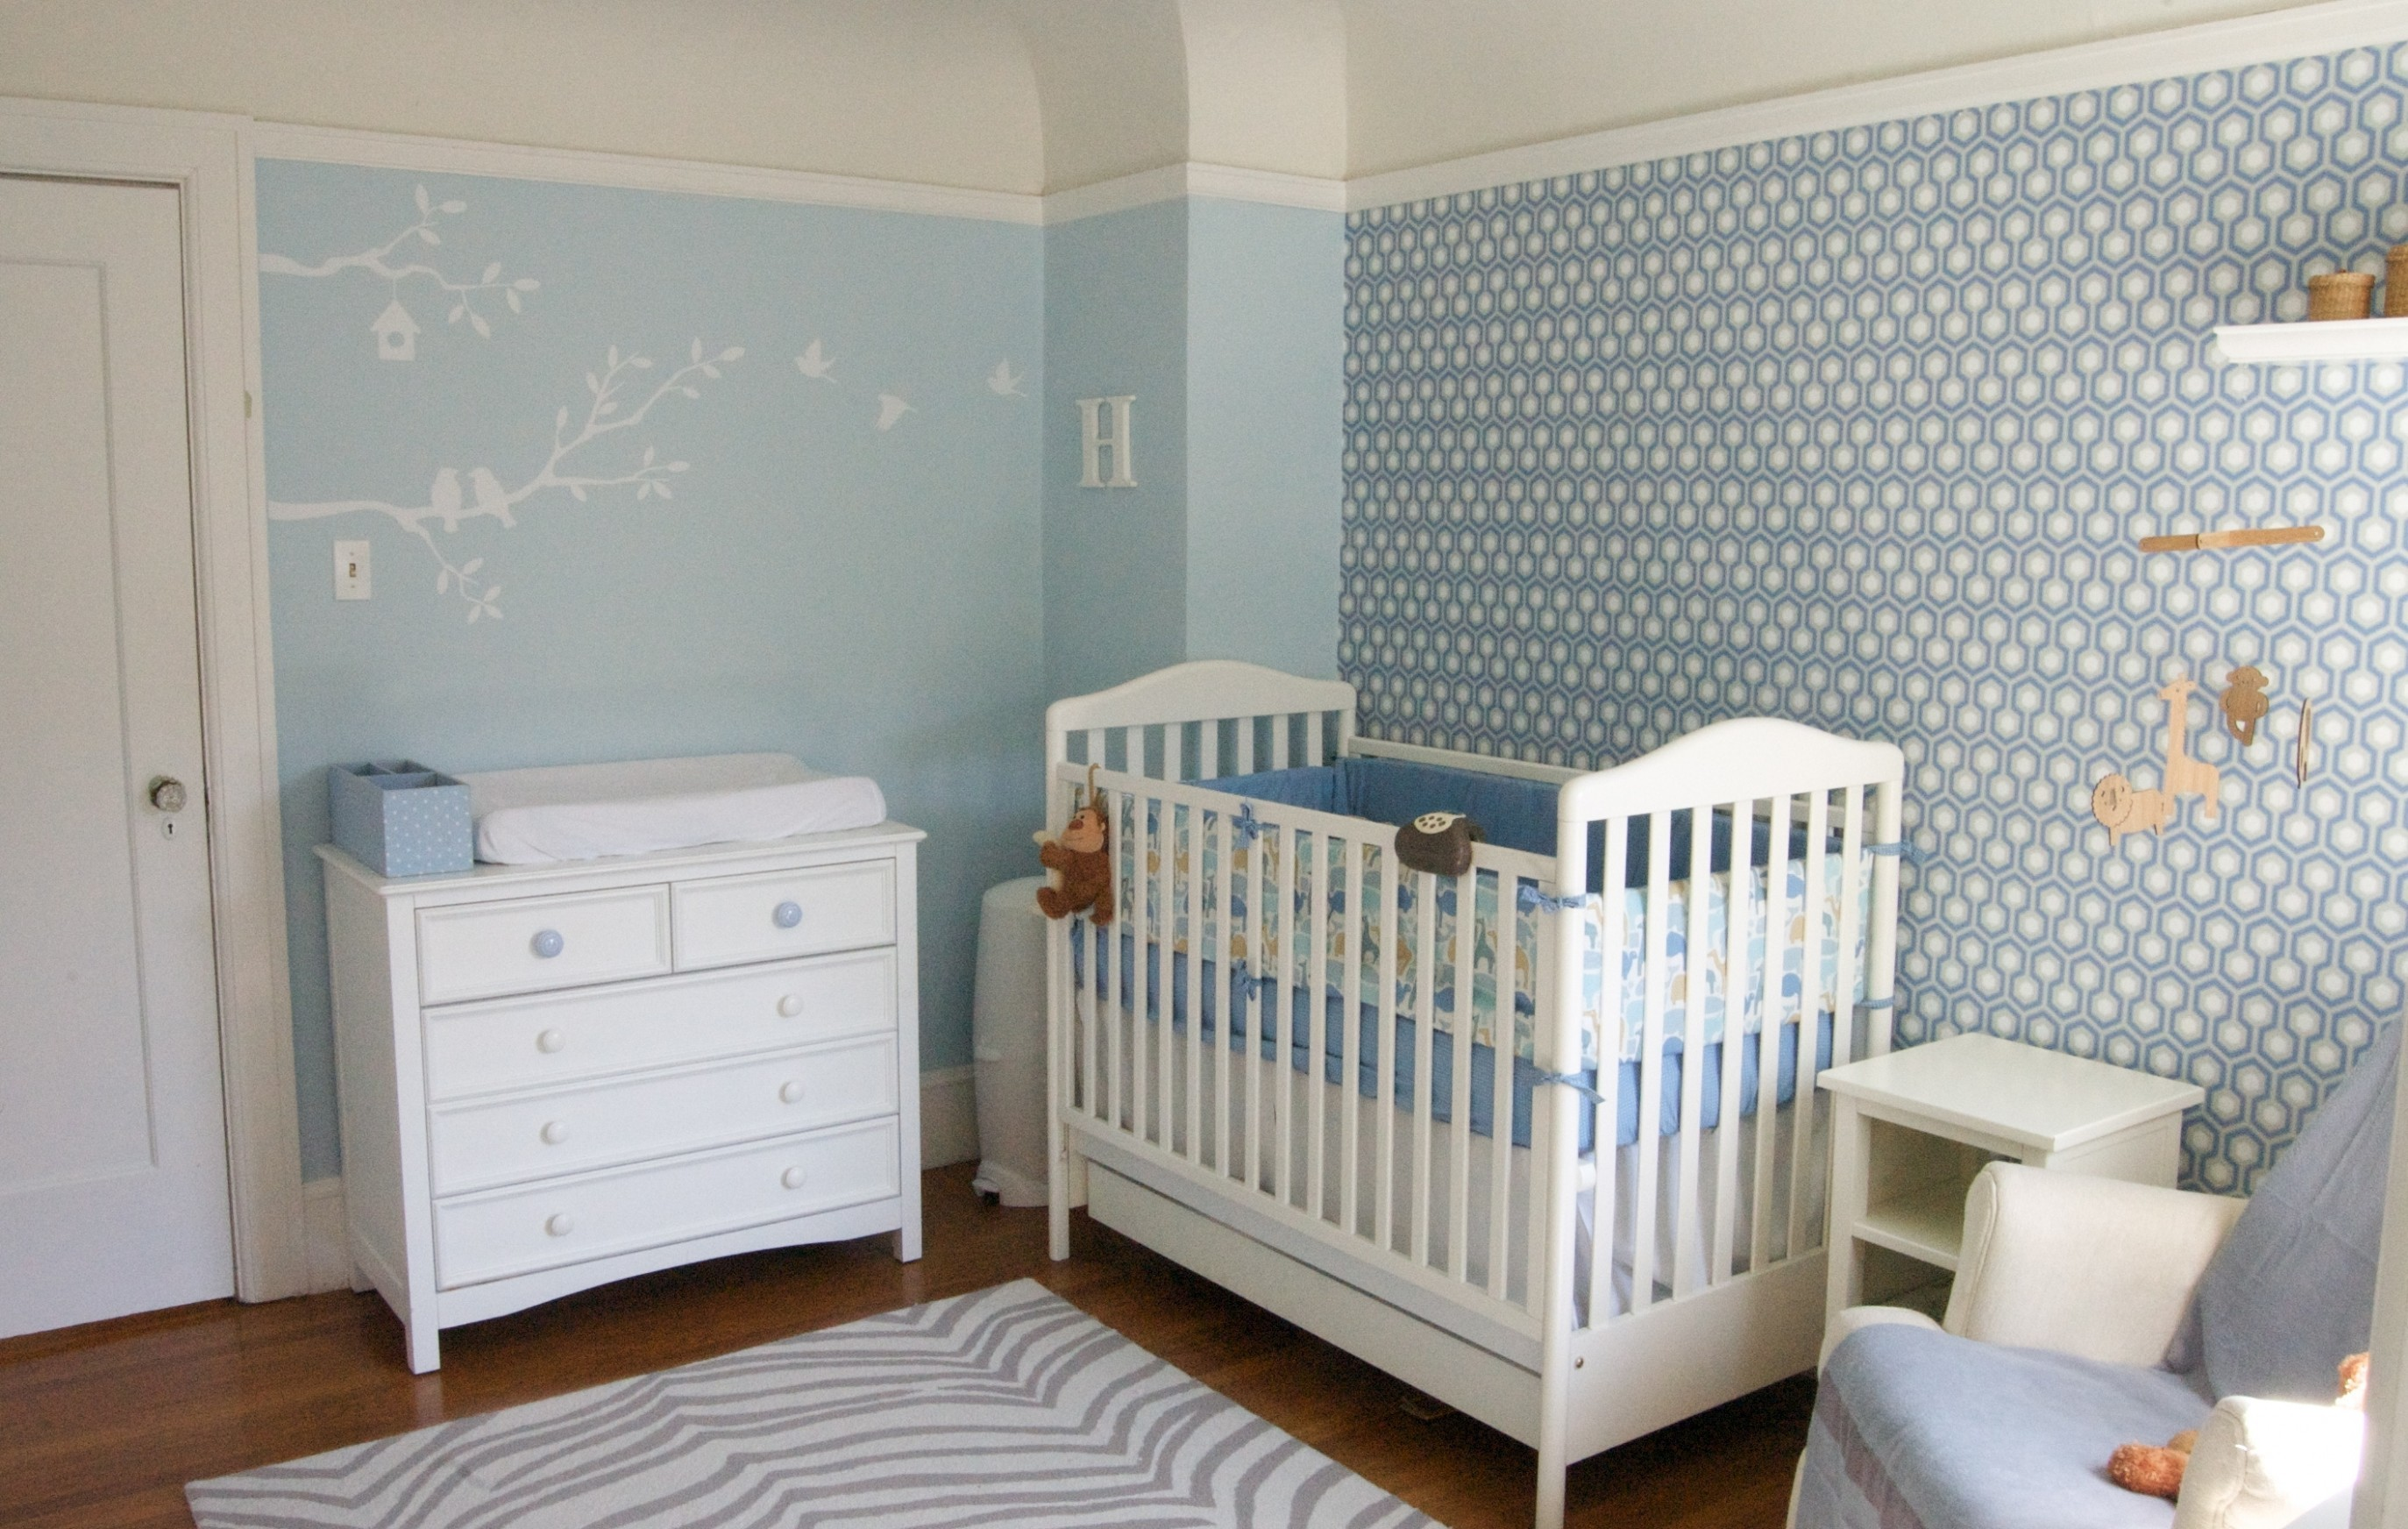 Res: 2747x1744, ... Wallpaper Designs For Baby Room – [peenmedia ...